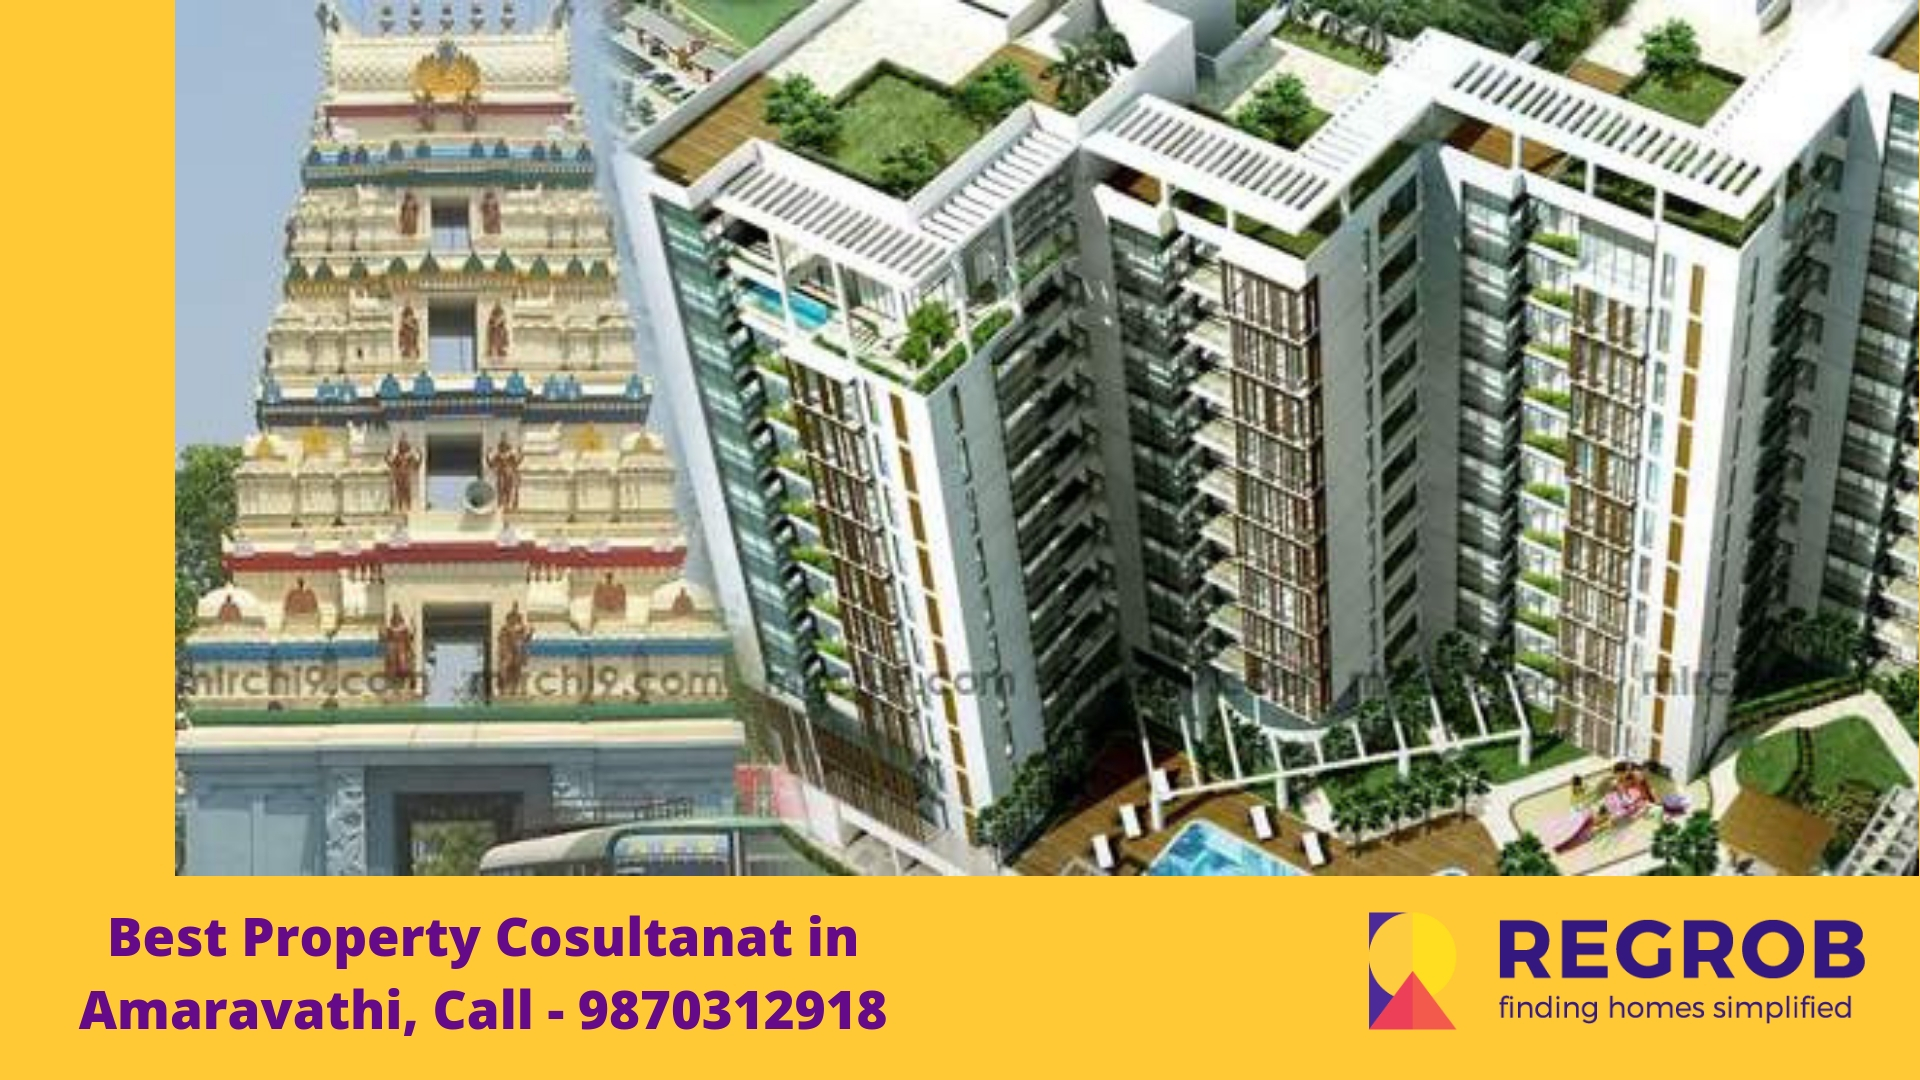 Residential and commercial property in Amaravathi